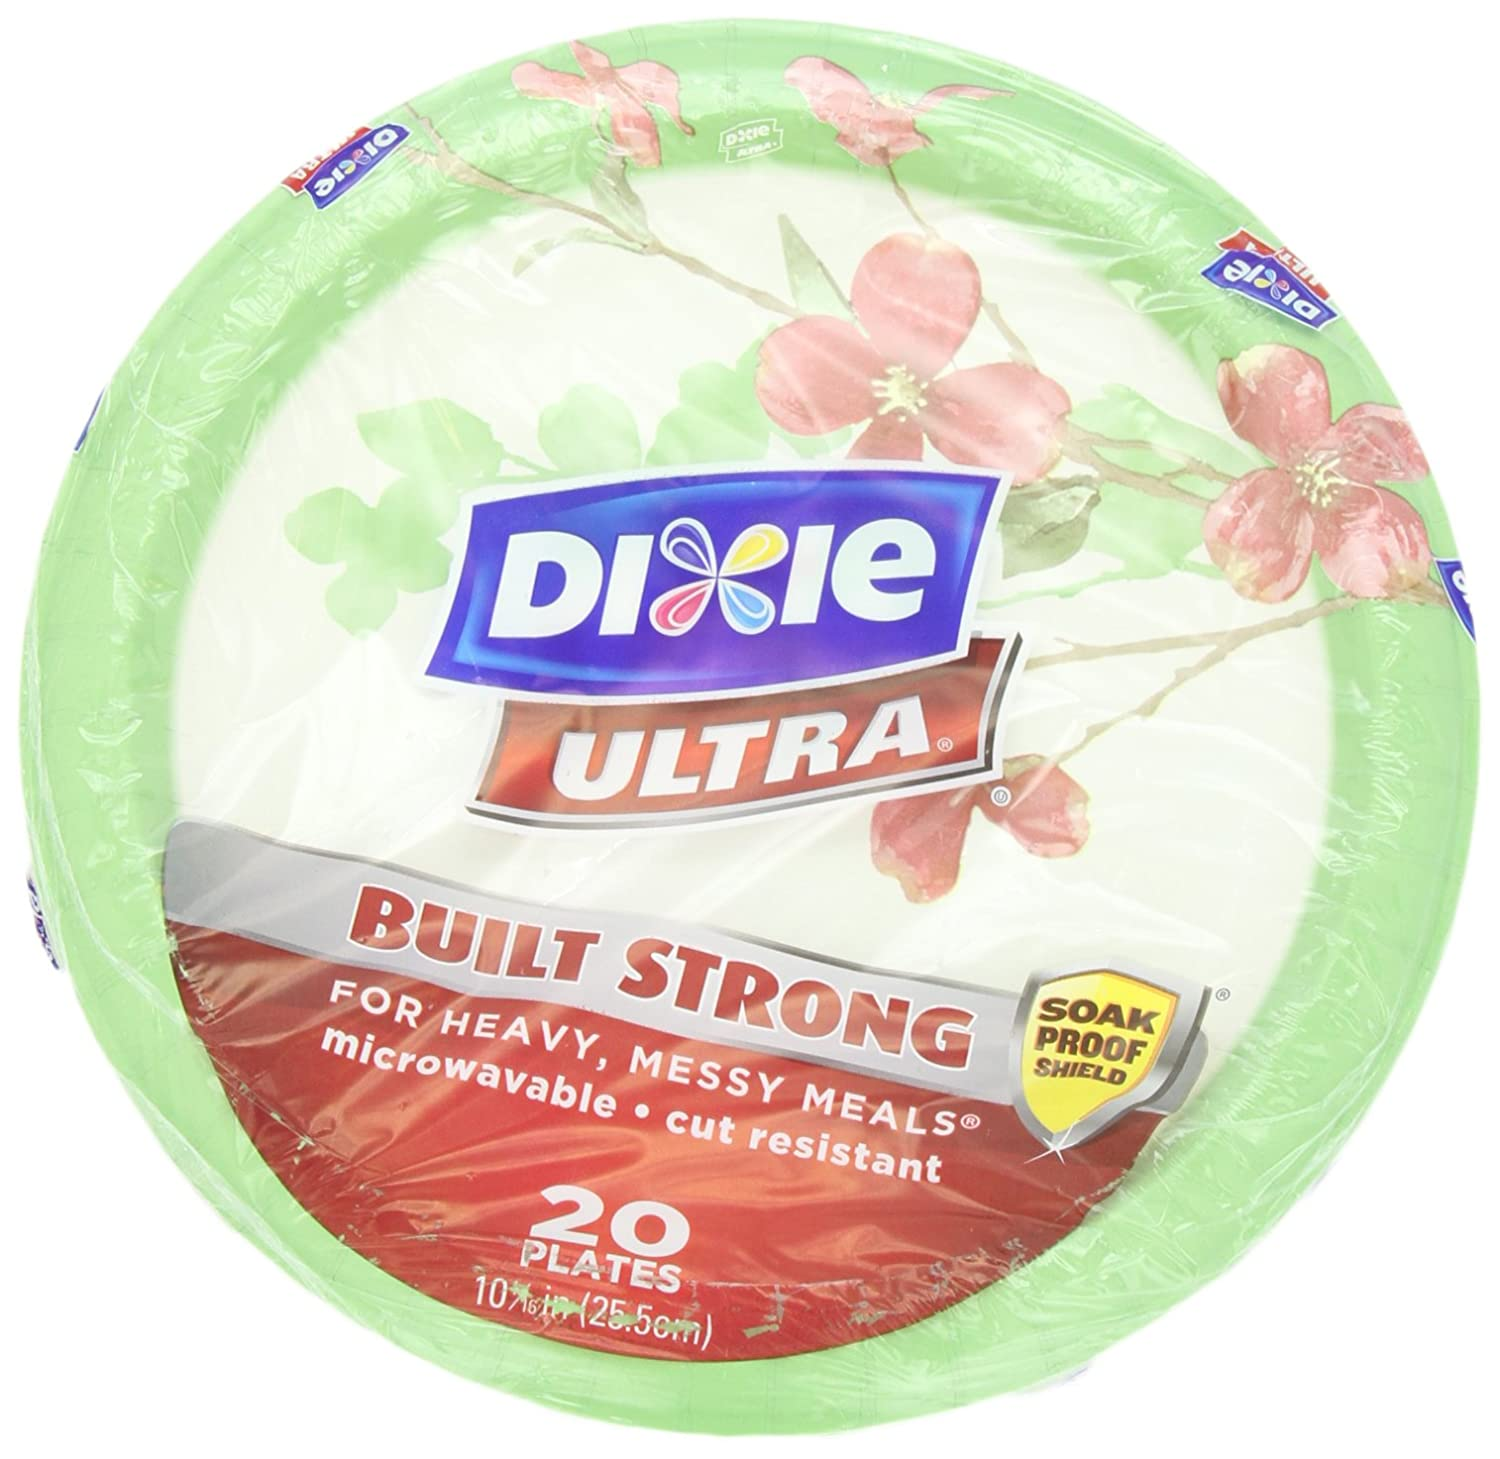 Amazon.com Dixie Ultra Modern Romance Plates 20 Count 10.0625 Inch Health \u0026 Personal Care  sc 1 st  Amazon.com & Amazon.com: Dixie Ultra Modern Romance Plates 20 Count 10.0625 ...